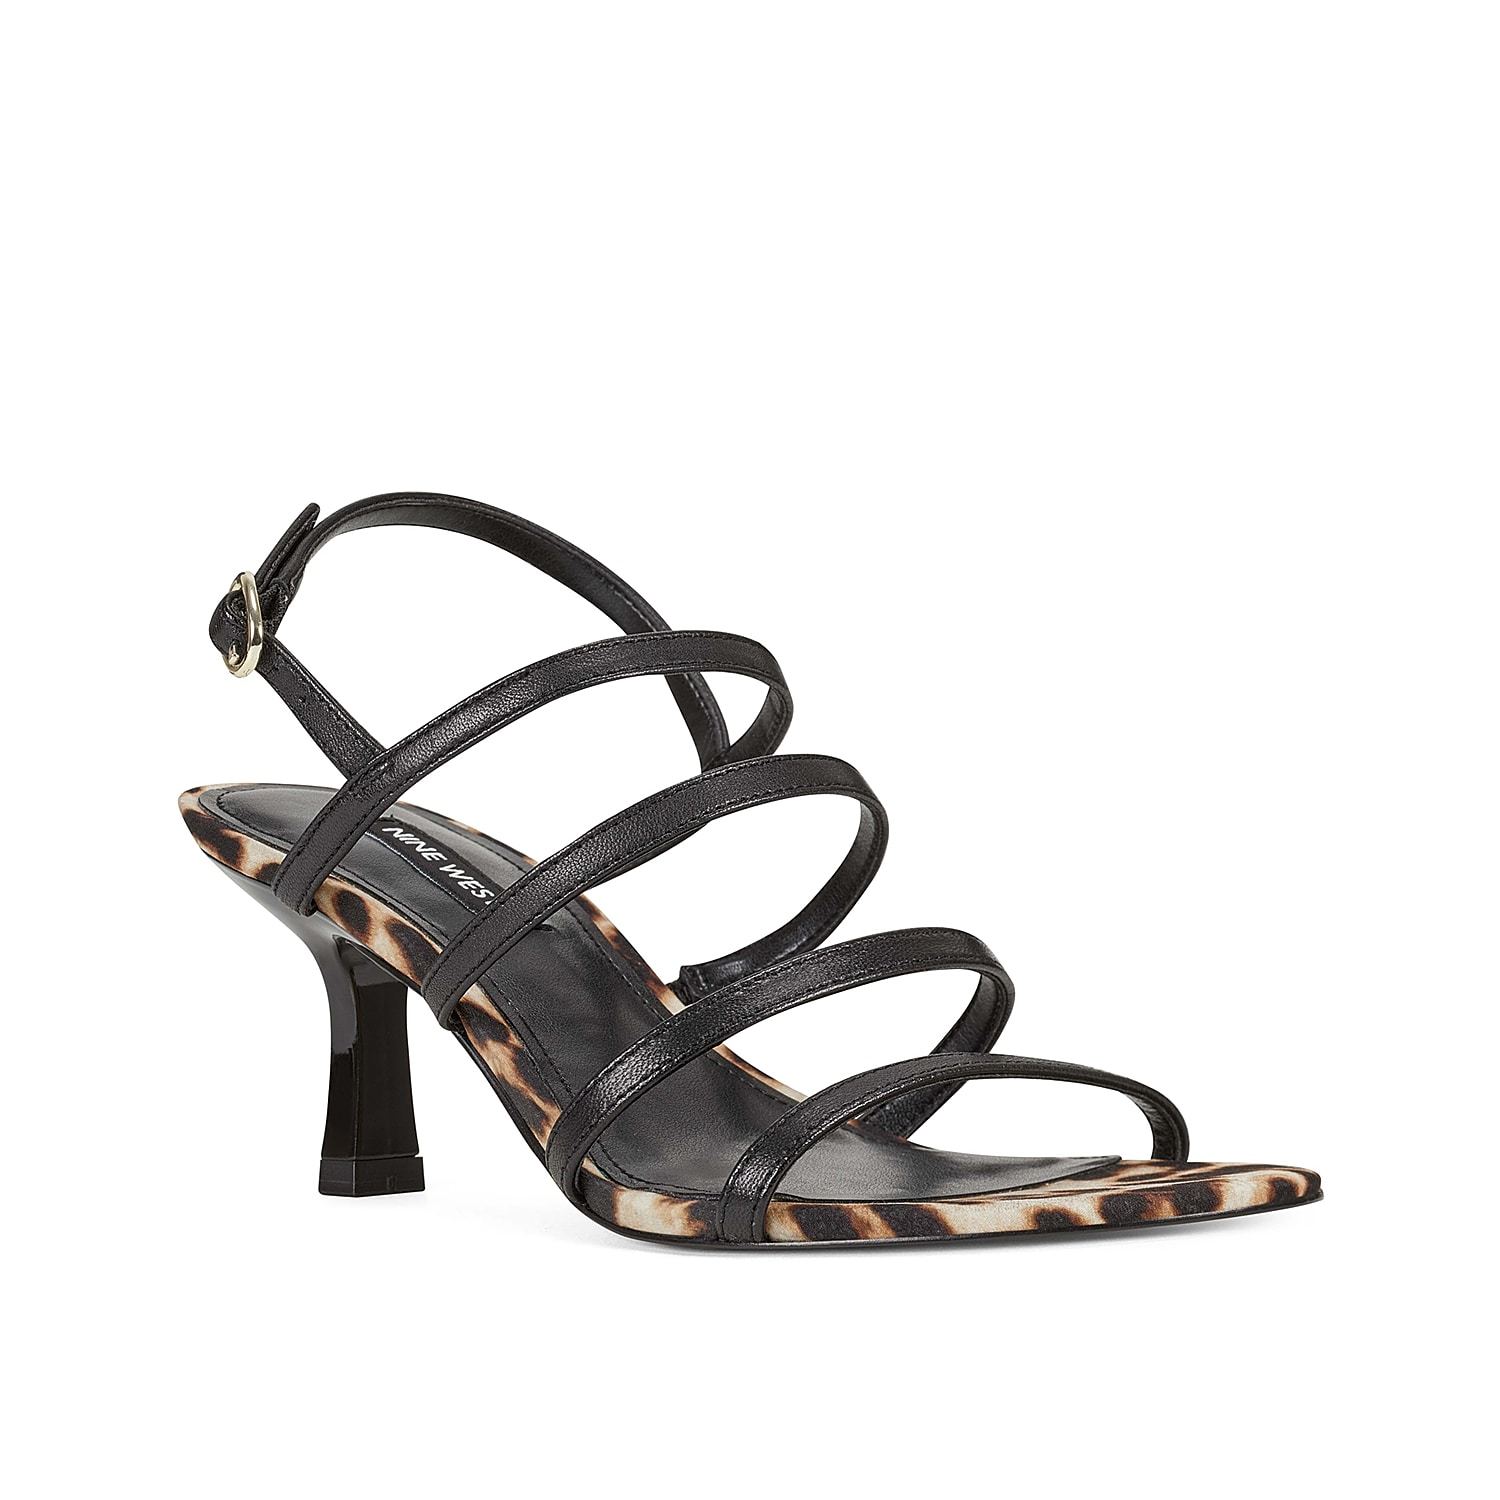 Upgrade your shoe collection with the Smooth sandal from Nine West. This silhouette is fashioned with multiple barely-there straps and the right amount of height for your Gno!